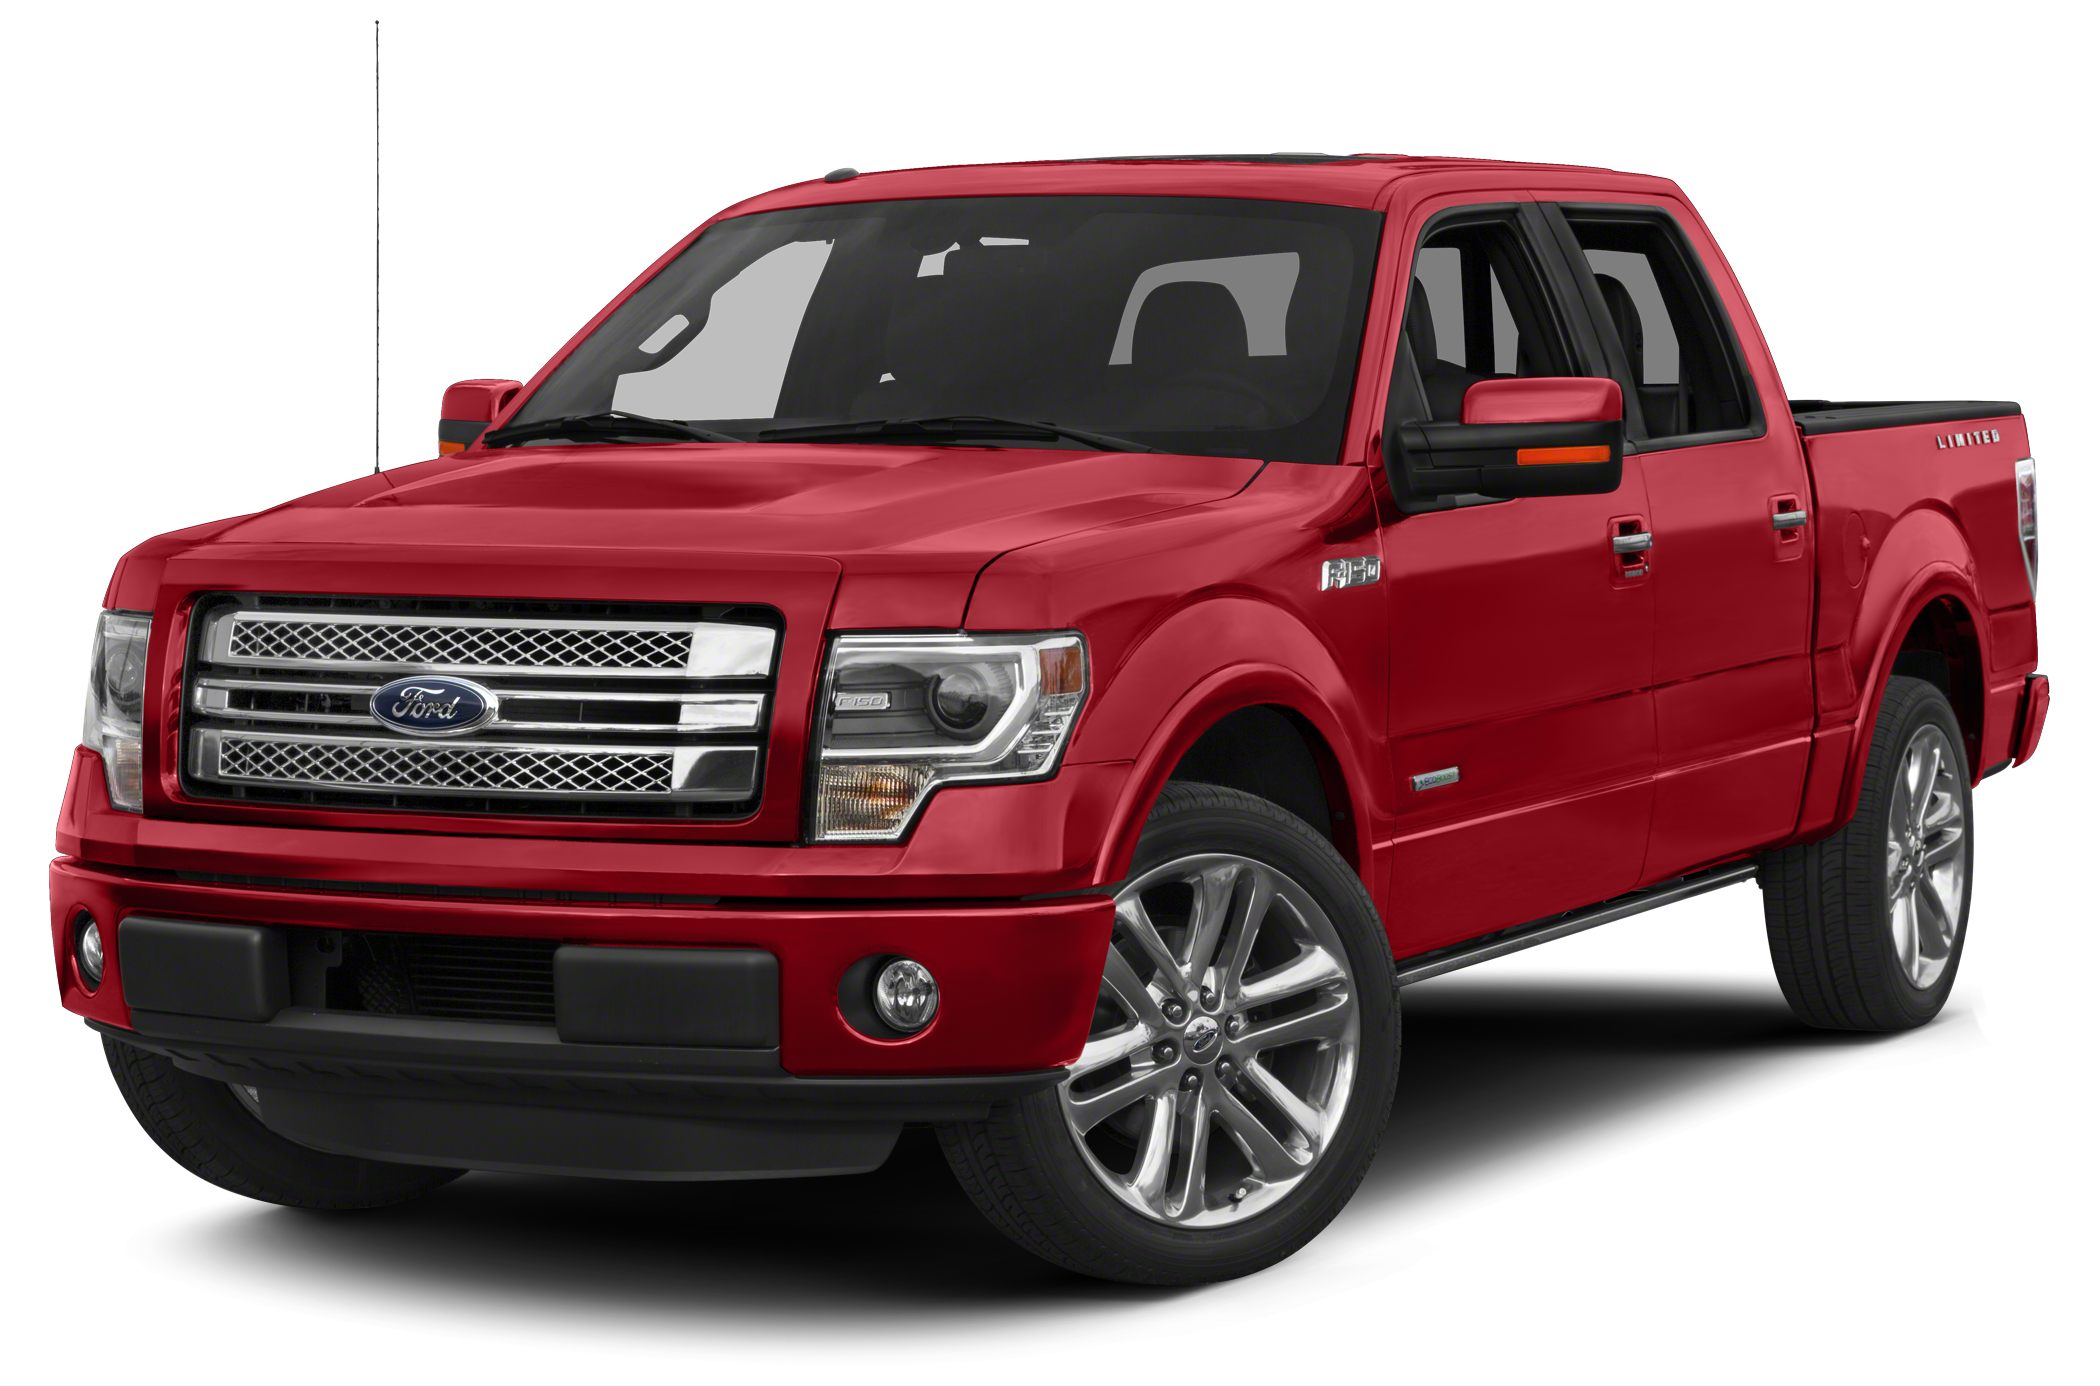 2013 Ford F150 Limited Crew Cab Pickup for sale in Knoxville for $40,991 with 29,779 miles.